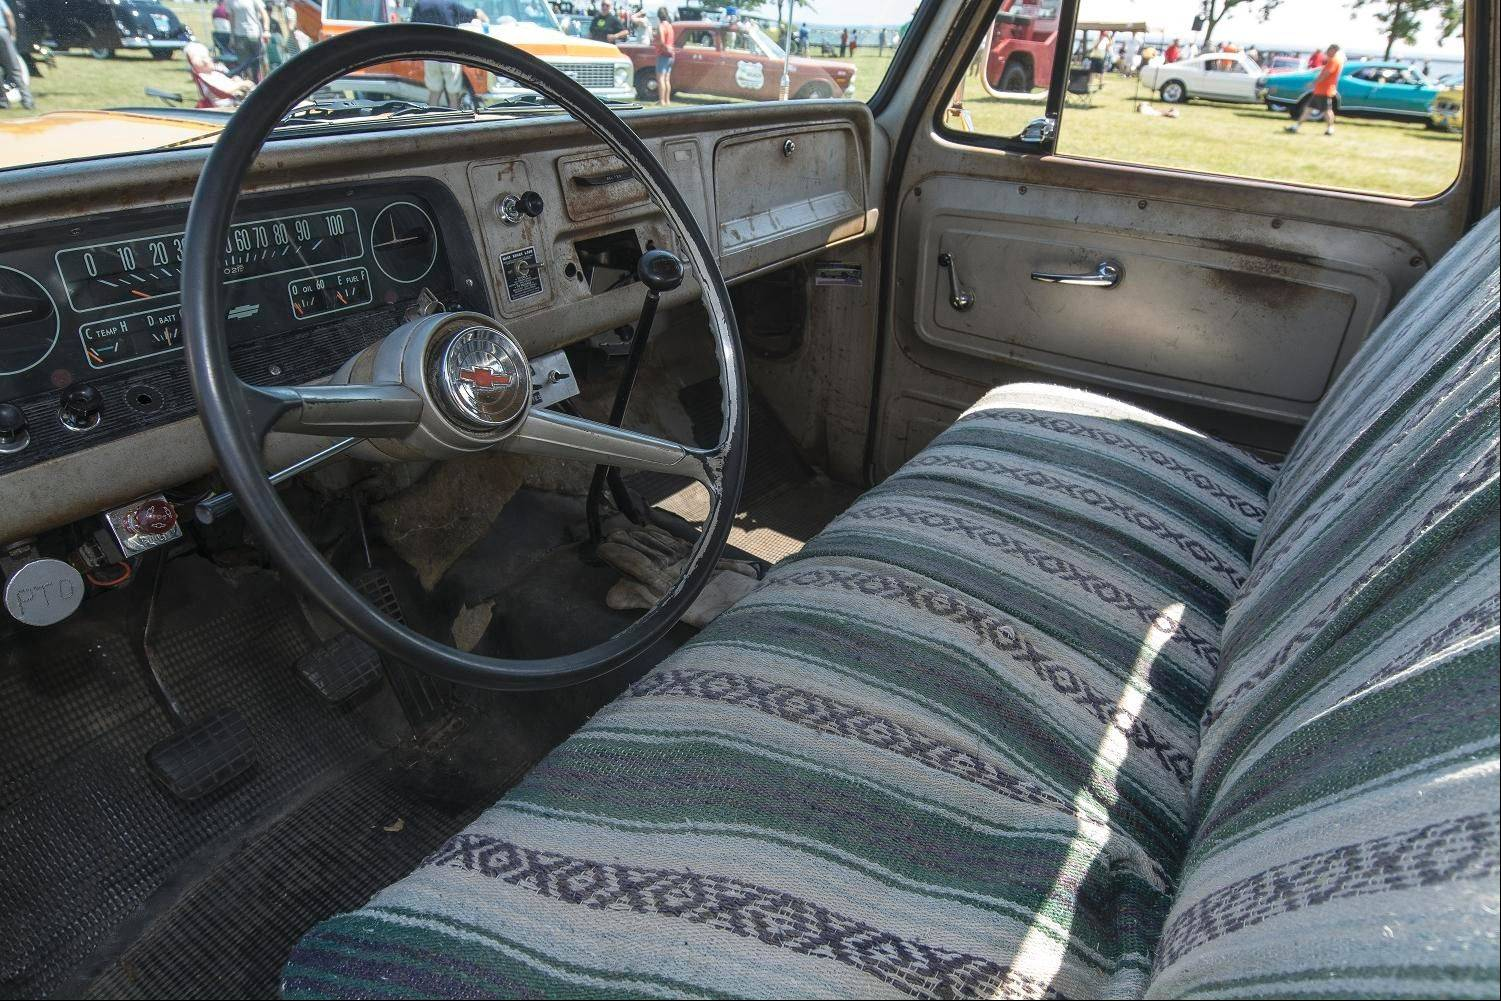 The interior upholstery has been replaced, but the rest of the cab is in its well-worn, original condition.